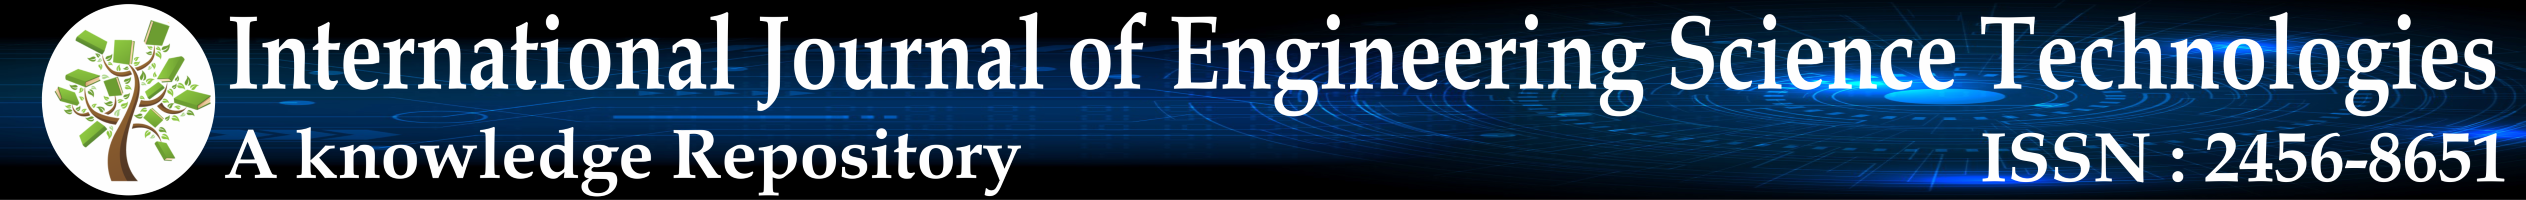 IJOEST International Journal of Engineering Science Technologies is an open access, peer reviewed journal